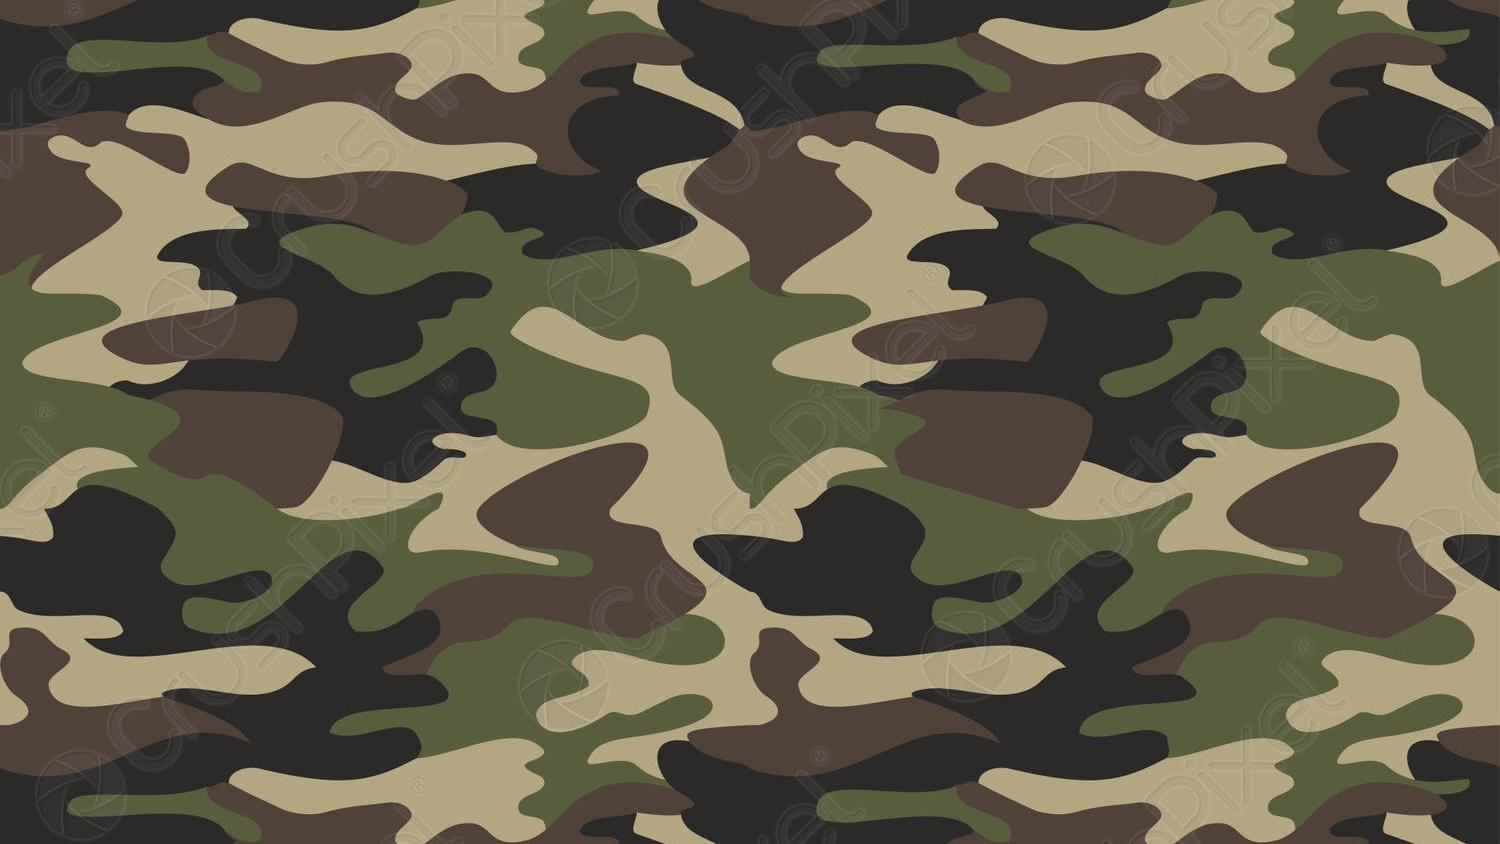 camouflage-pattern-background-seamless-vector-1496646-Cropped.jpg